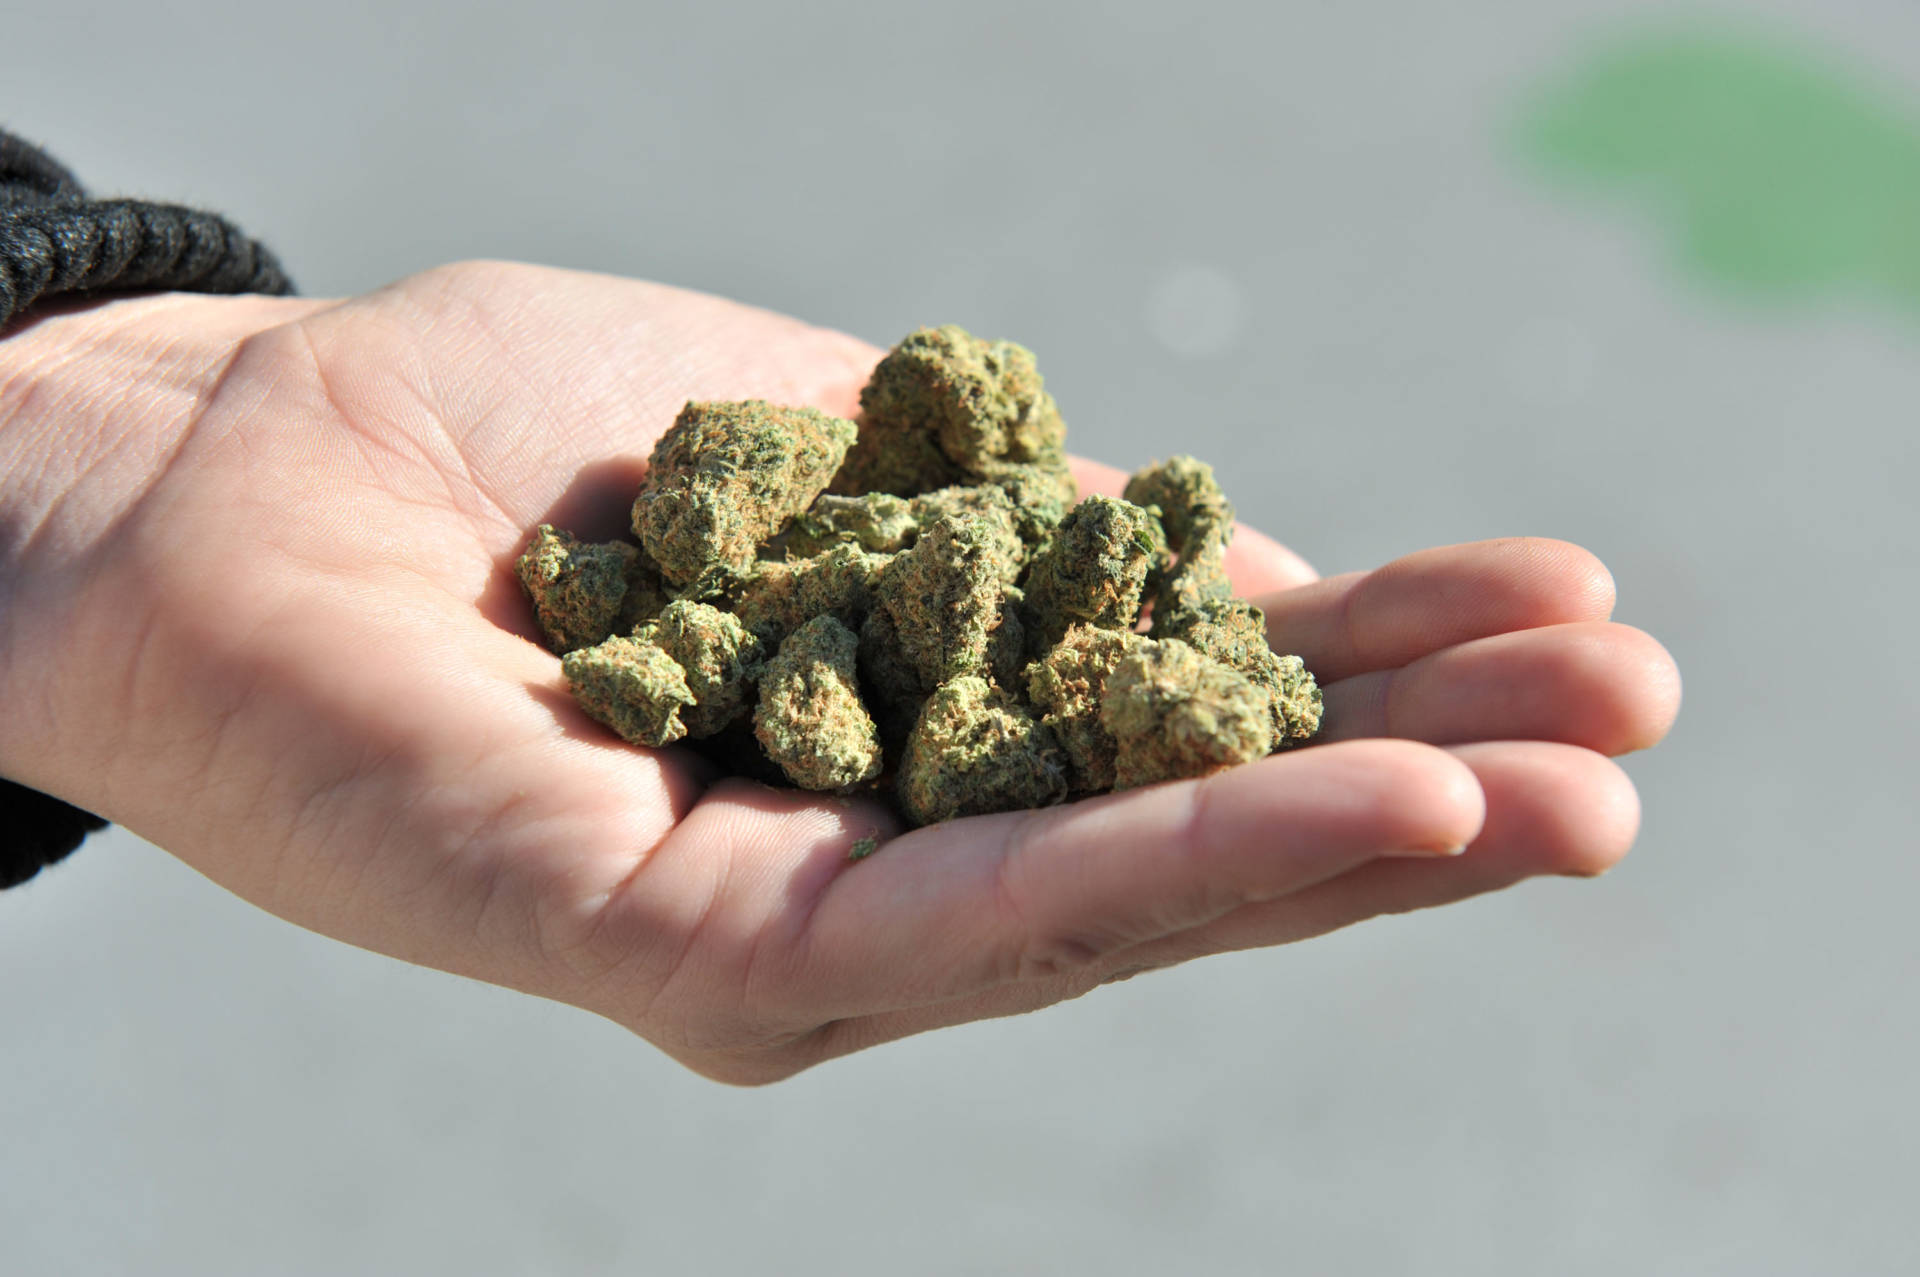 Three California agencies released proposed regulations Friday, Dec. 7, 2018, for the state's marijuana industry including deliveries that will become permanent next month after state lawyers finish their review of them. DON MACKINNON/AFP/Getty Images